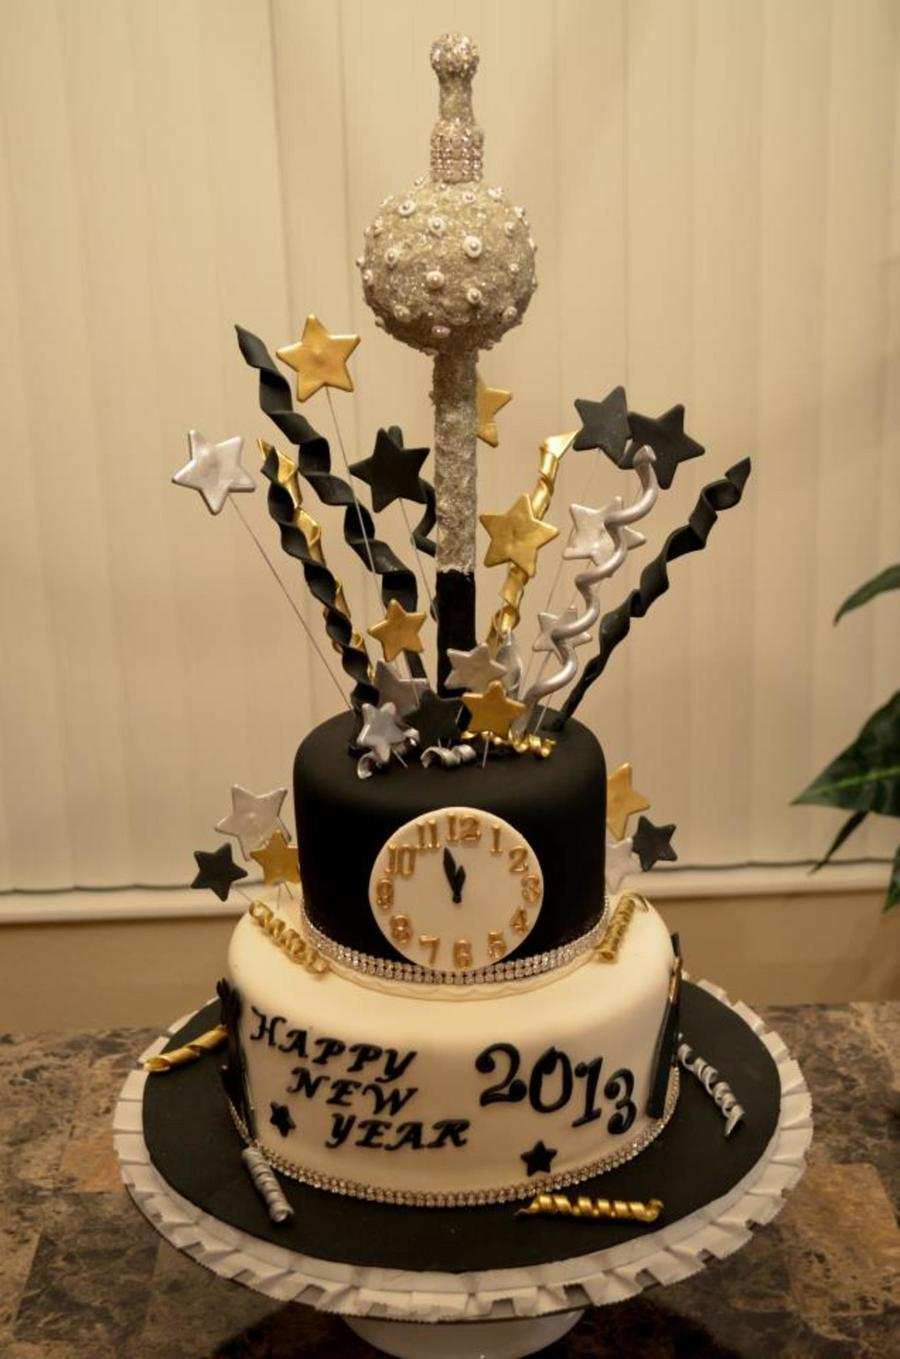 New Years Eve 2013 on Cake Central